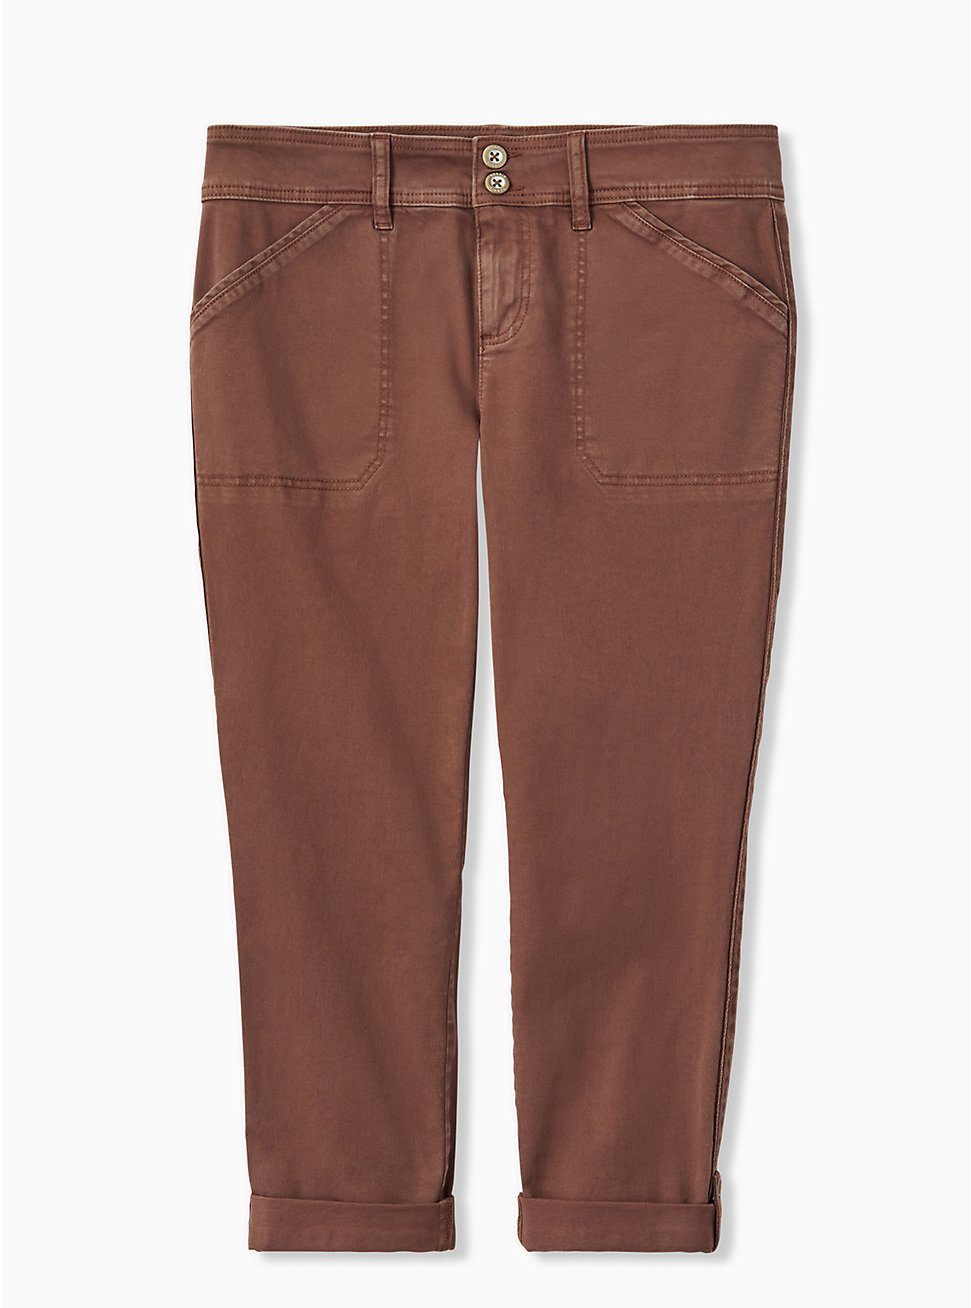 Plus Size Crop Aviator Pant - Twill Dark Taupe, DEEP TAUPE, hi-res